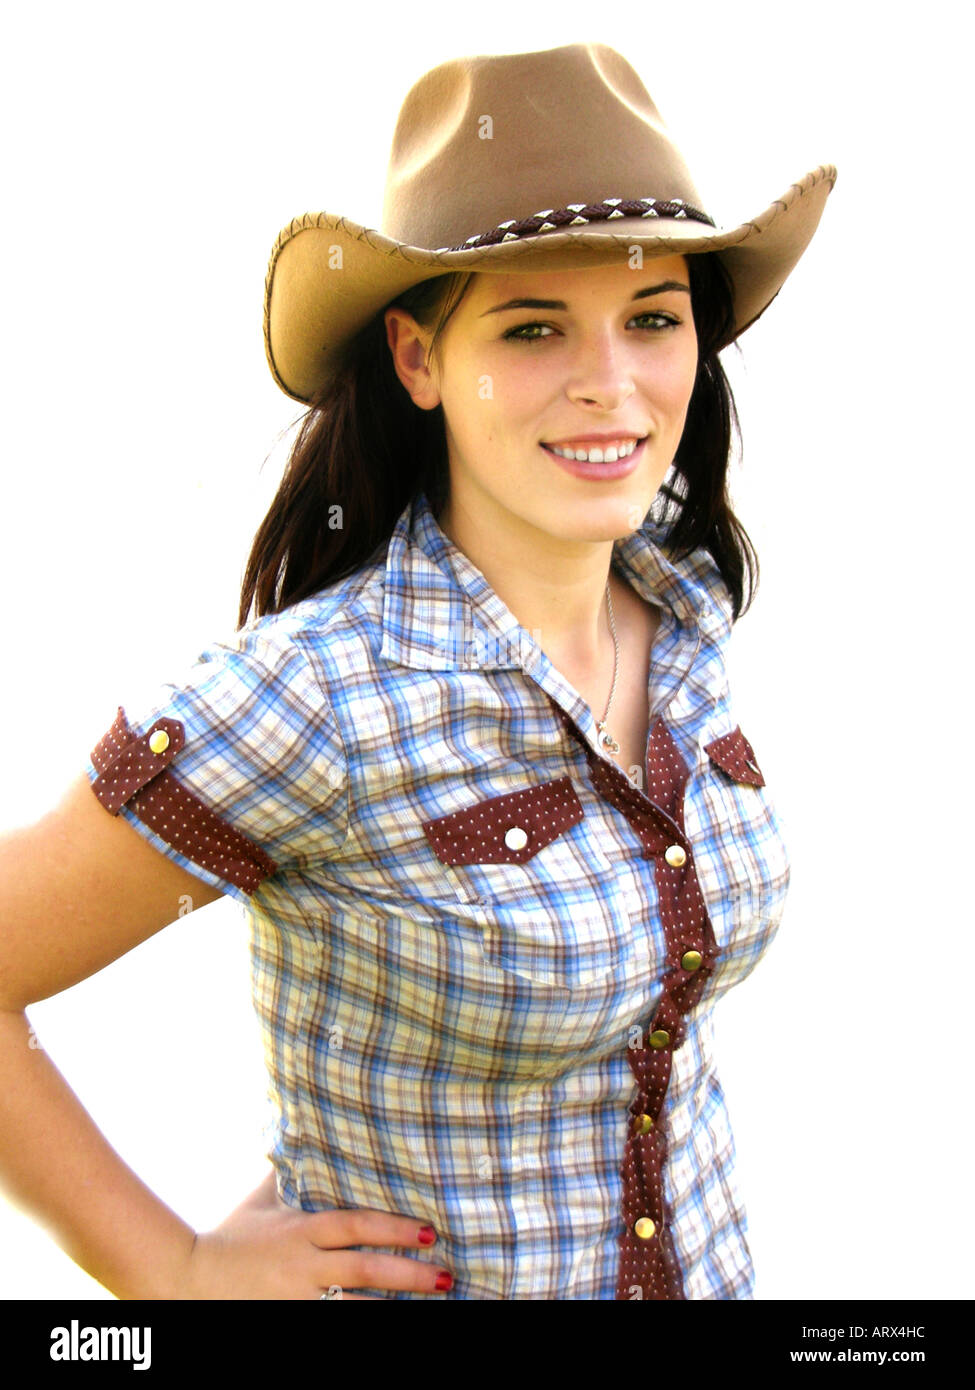 how to wear a cowboy hat girl